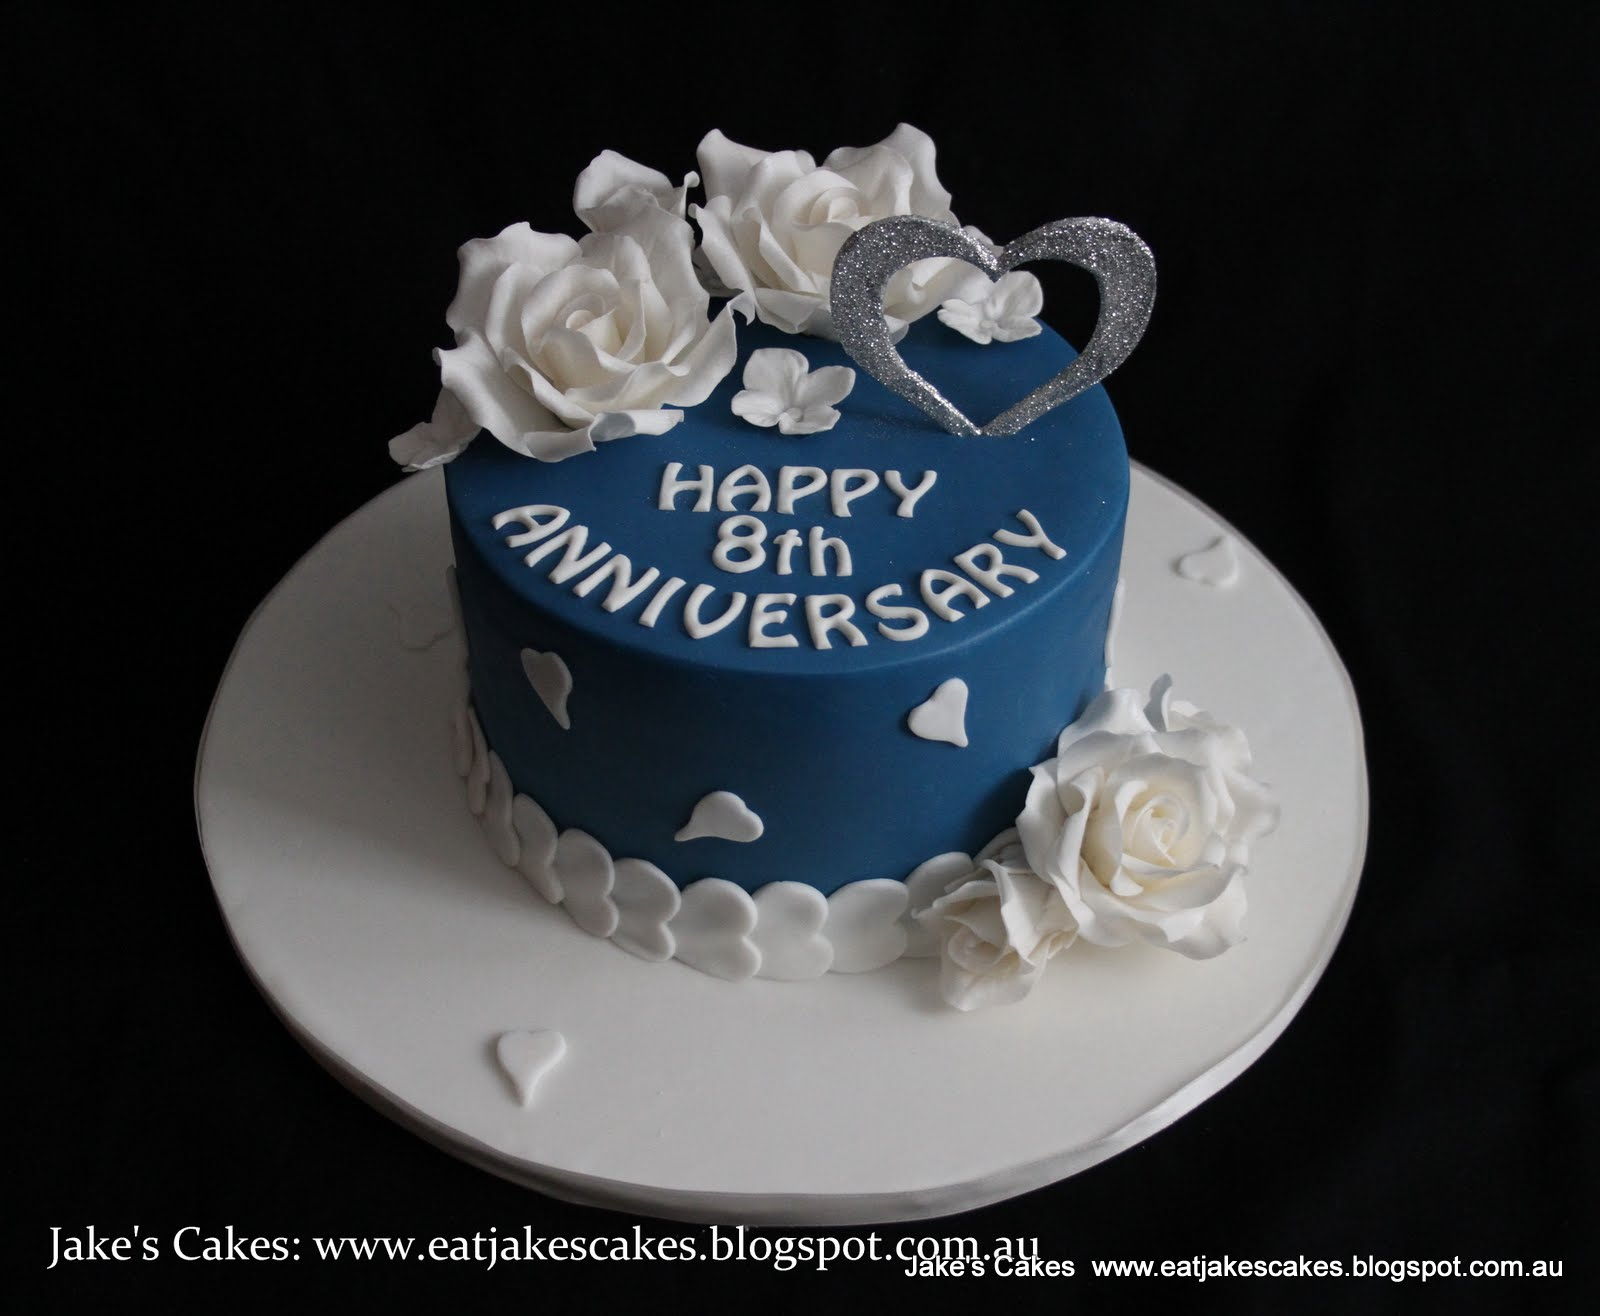 Jake 39 s cakes hearts and rose anniversary cake for Anniversary cake decoration